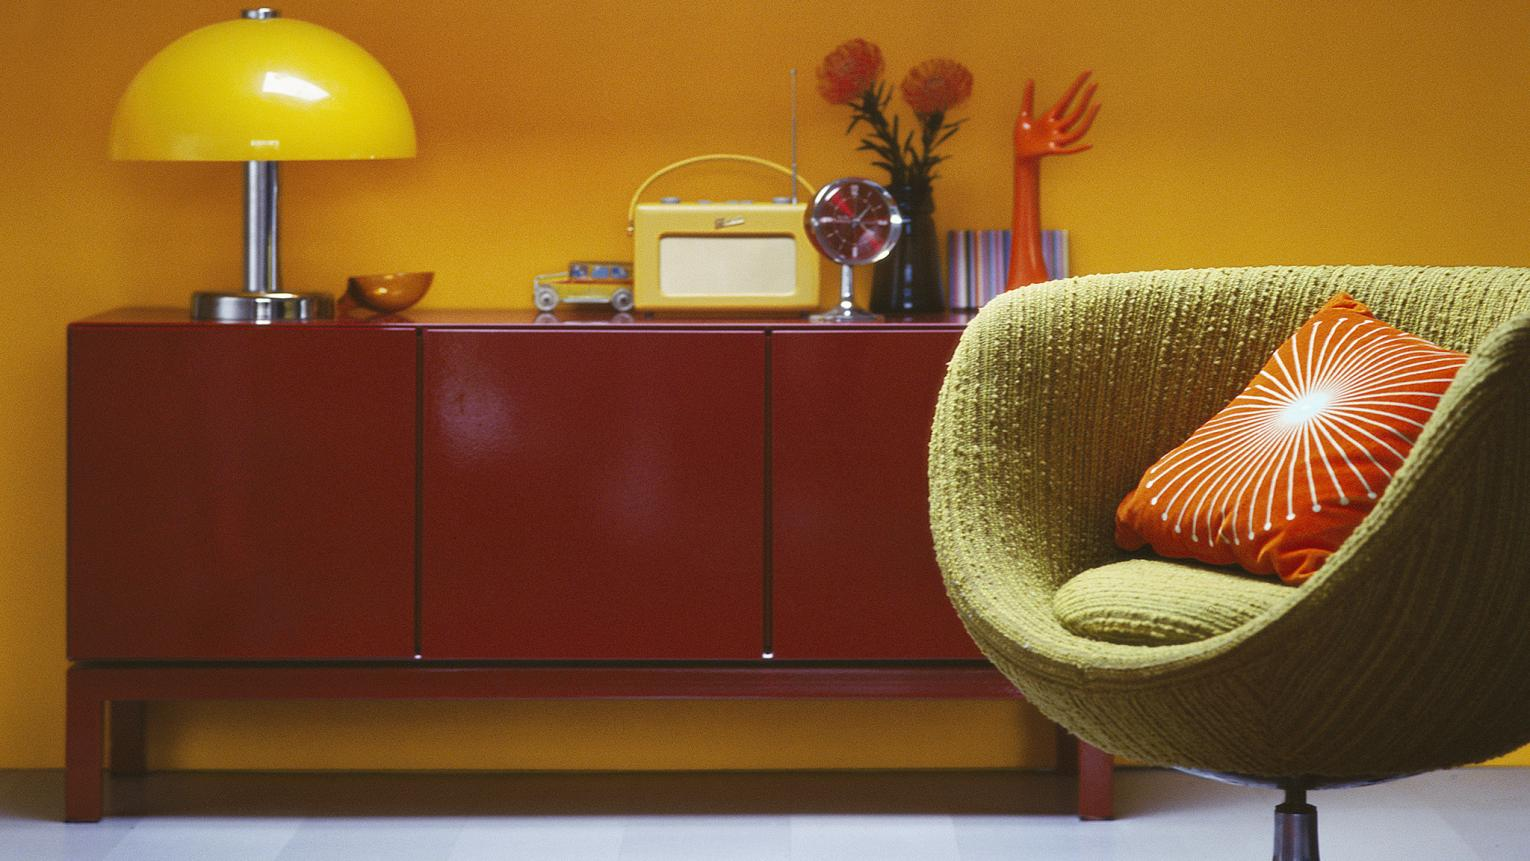 Warm yellow shades on a wall adds a dash of sunshine to any room.